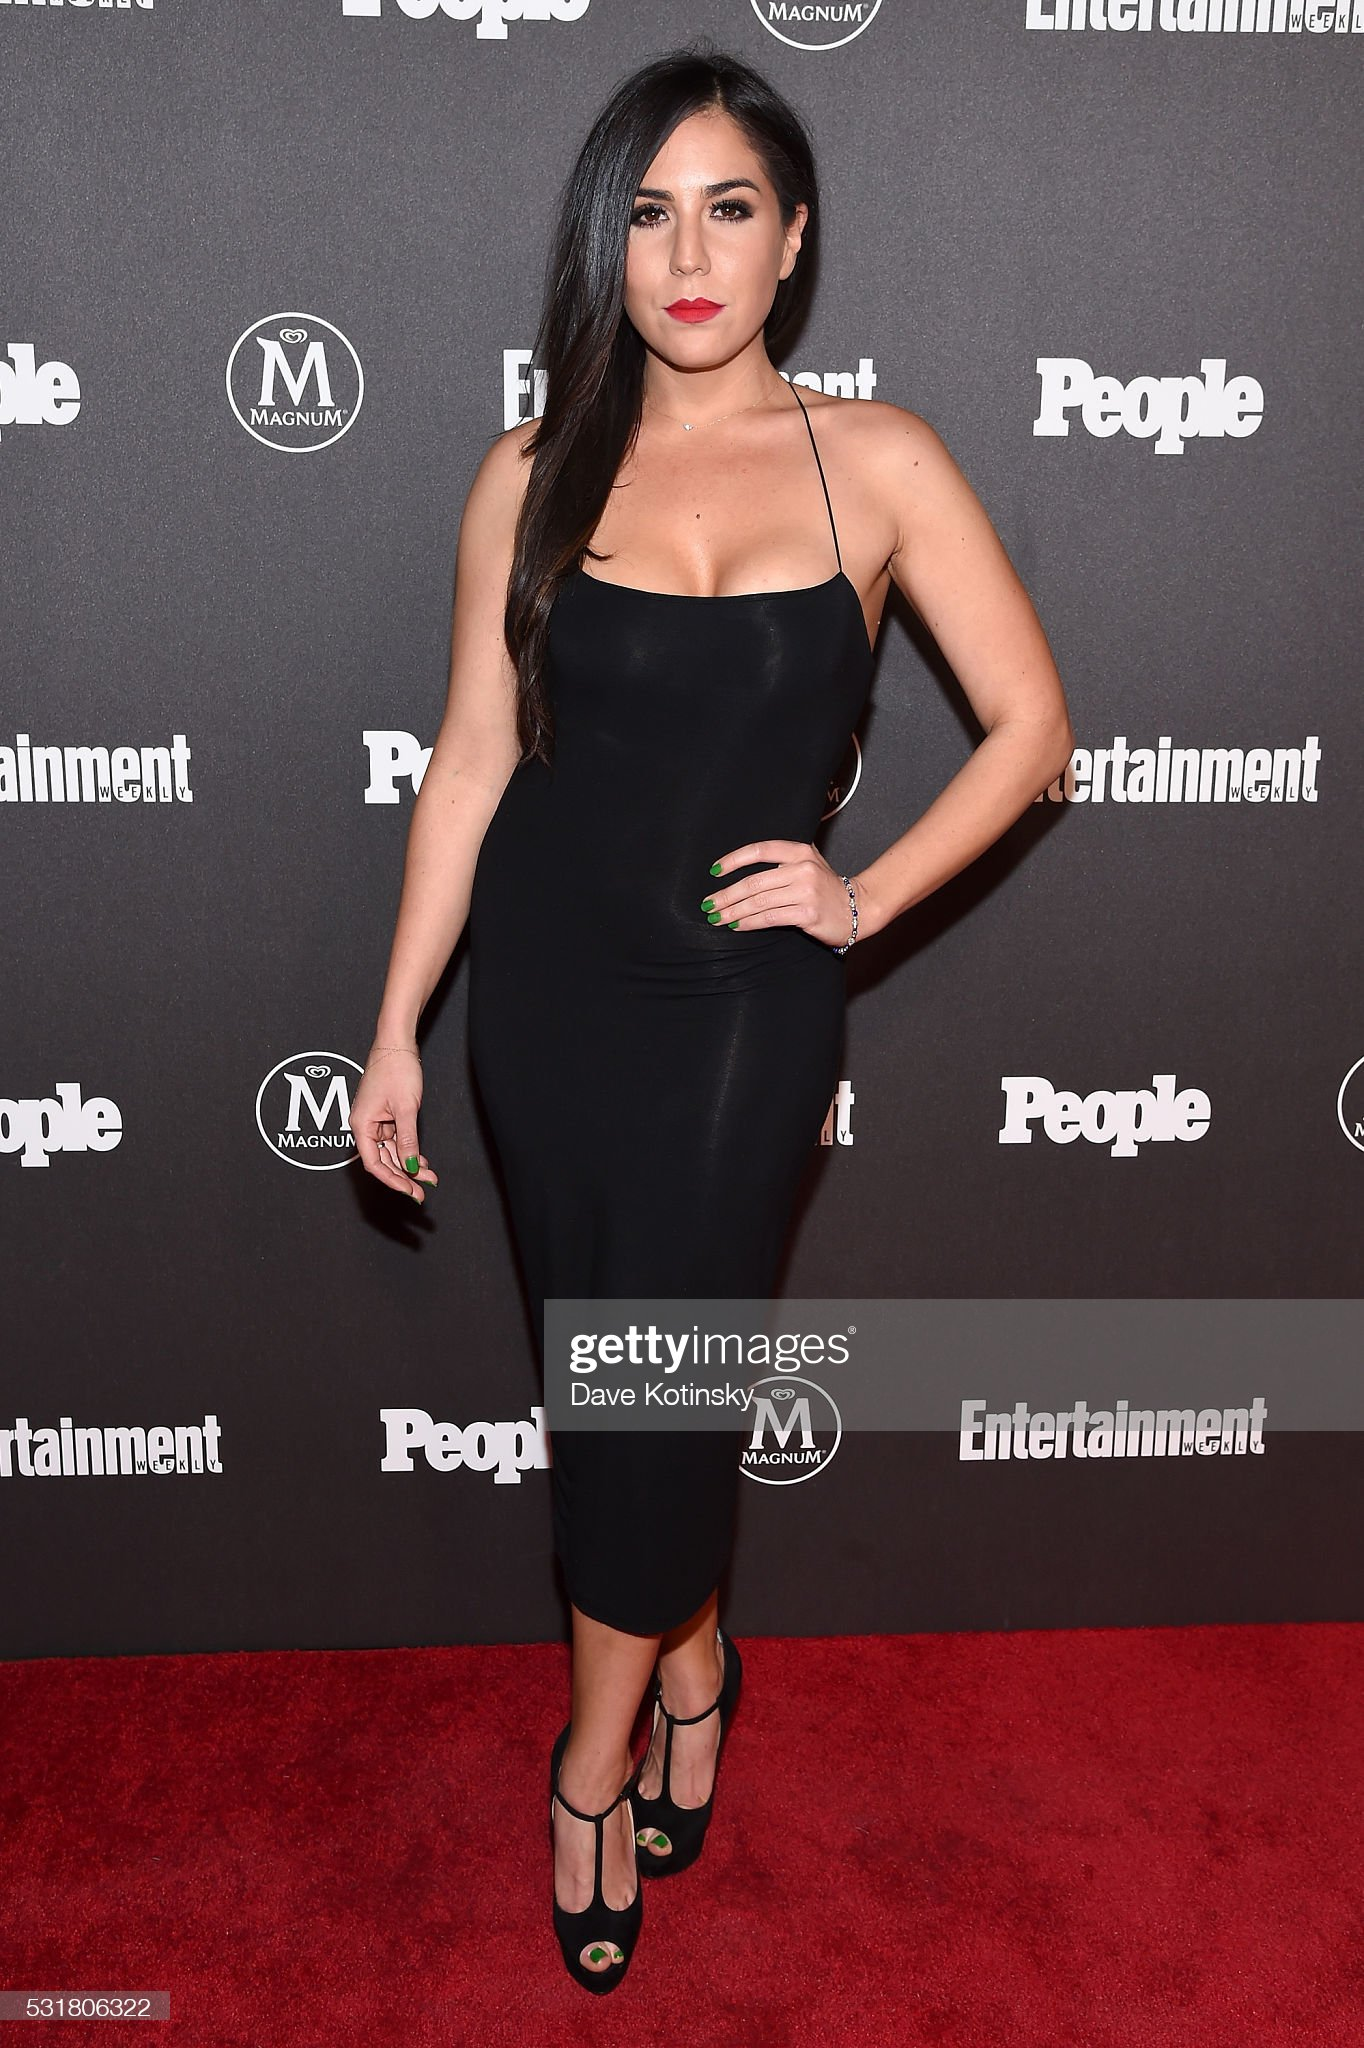 Top 80 Famosas Foroalturas - Página 2 Audrey-esparza-attends-the-entertainment-weekly-people-upfronts-party-picture-id531806322?s=2048x2048